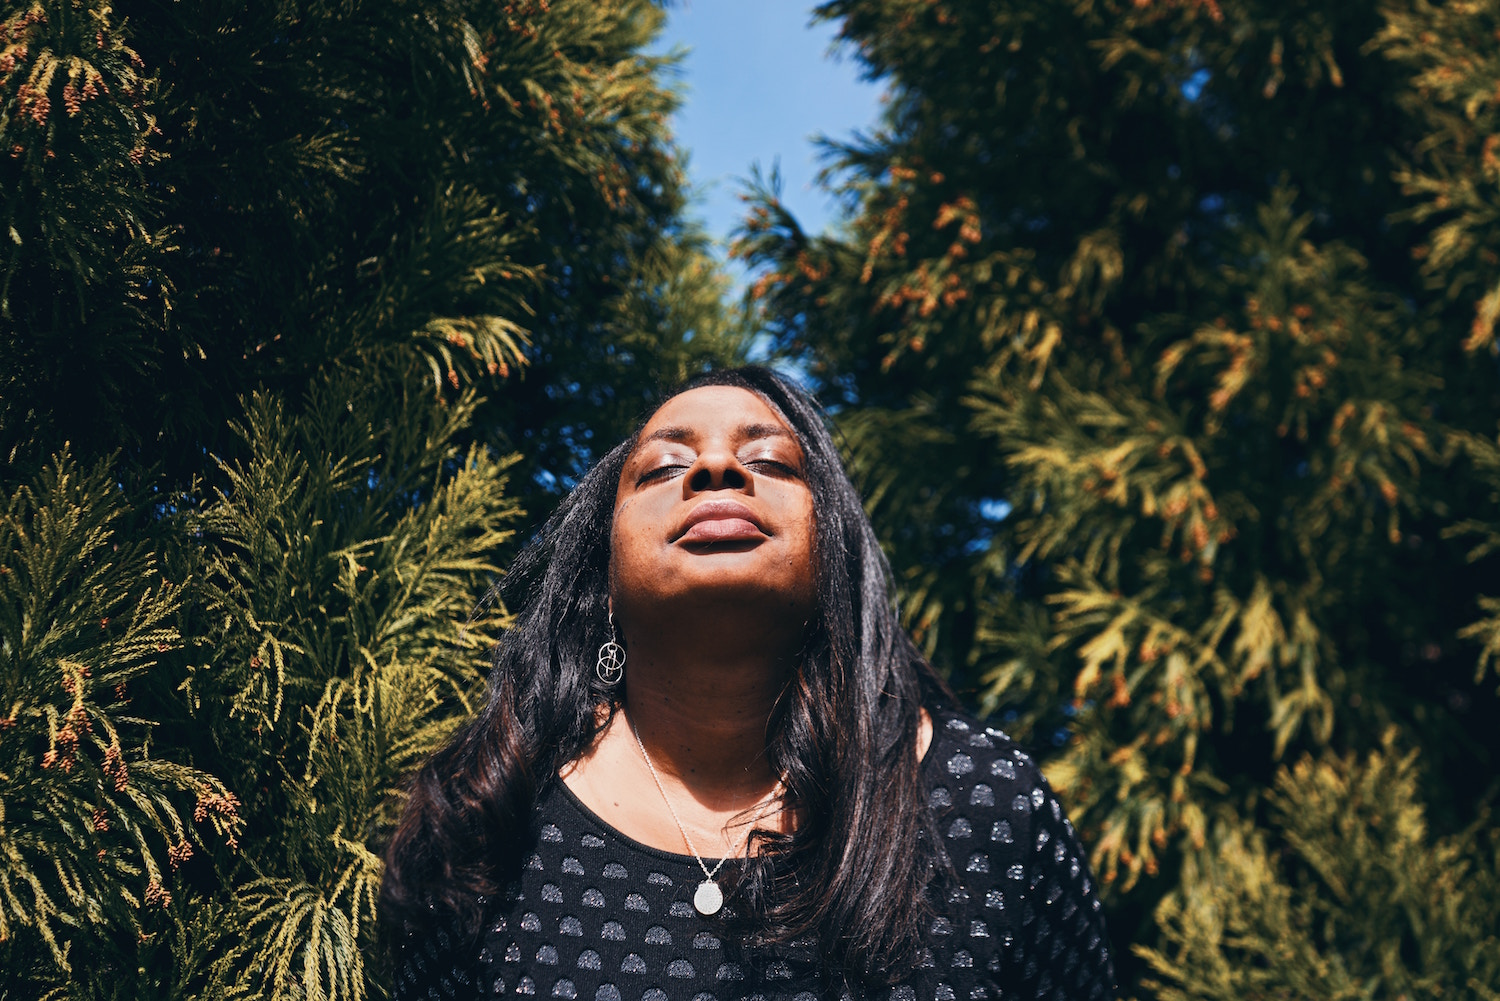 Black woman with her face lifted up toward the sun